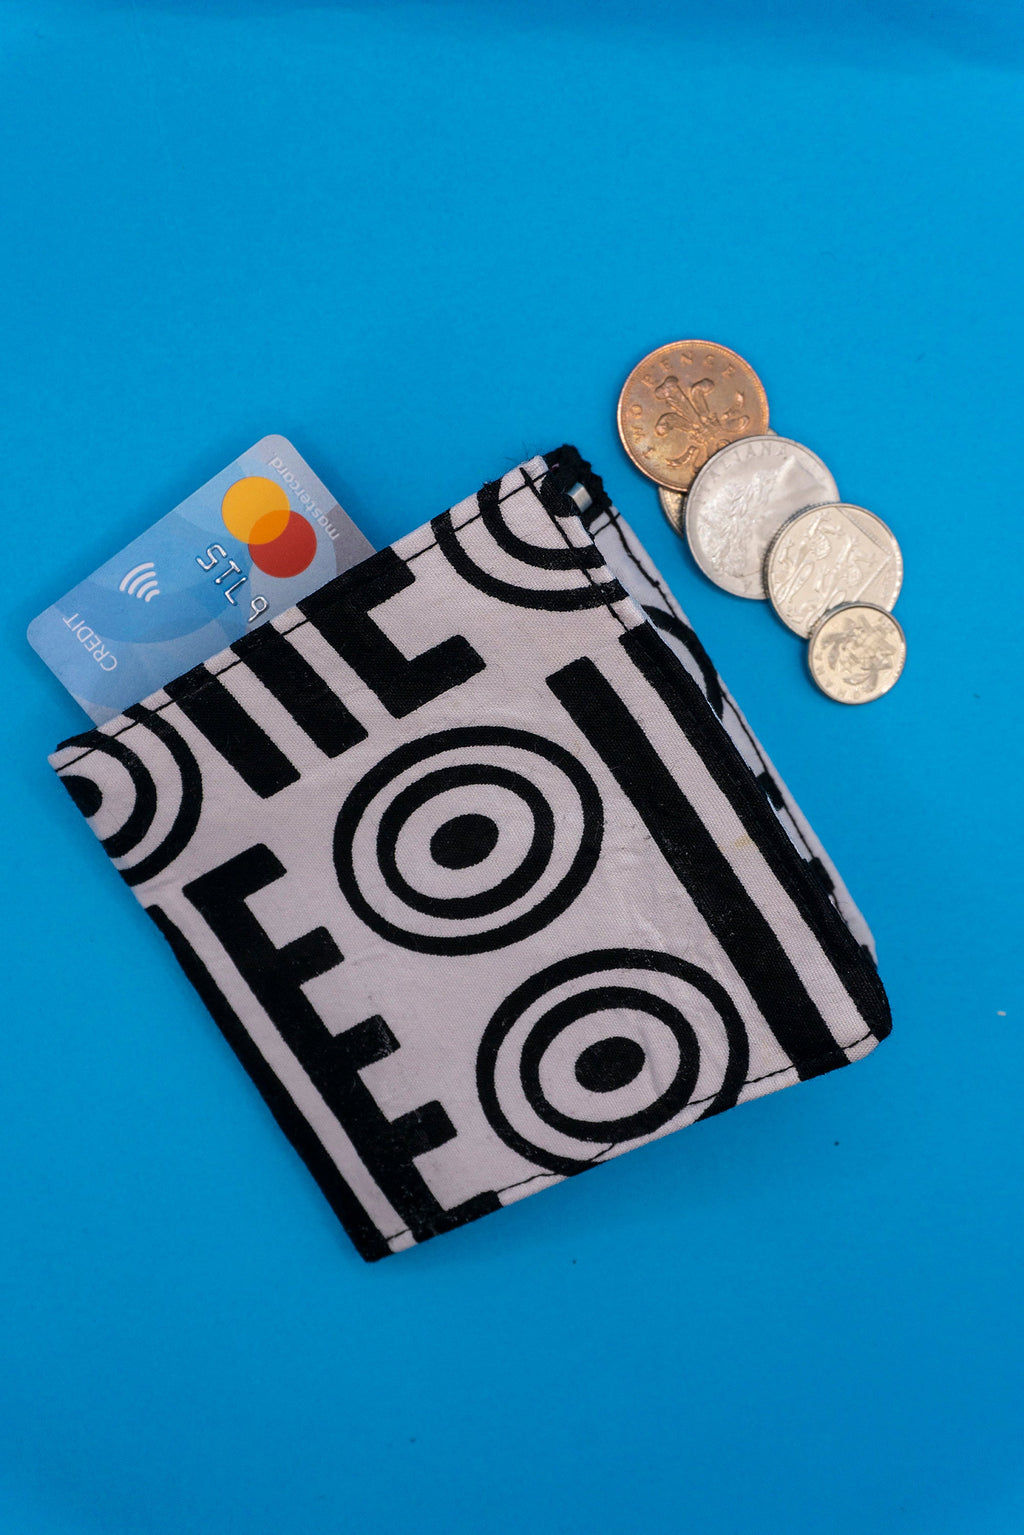 Pilolo Monochrome Wallet / Recycled wallet / African print wallet / Bill fold wallet / Gifts for him / Recycled accessories